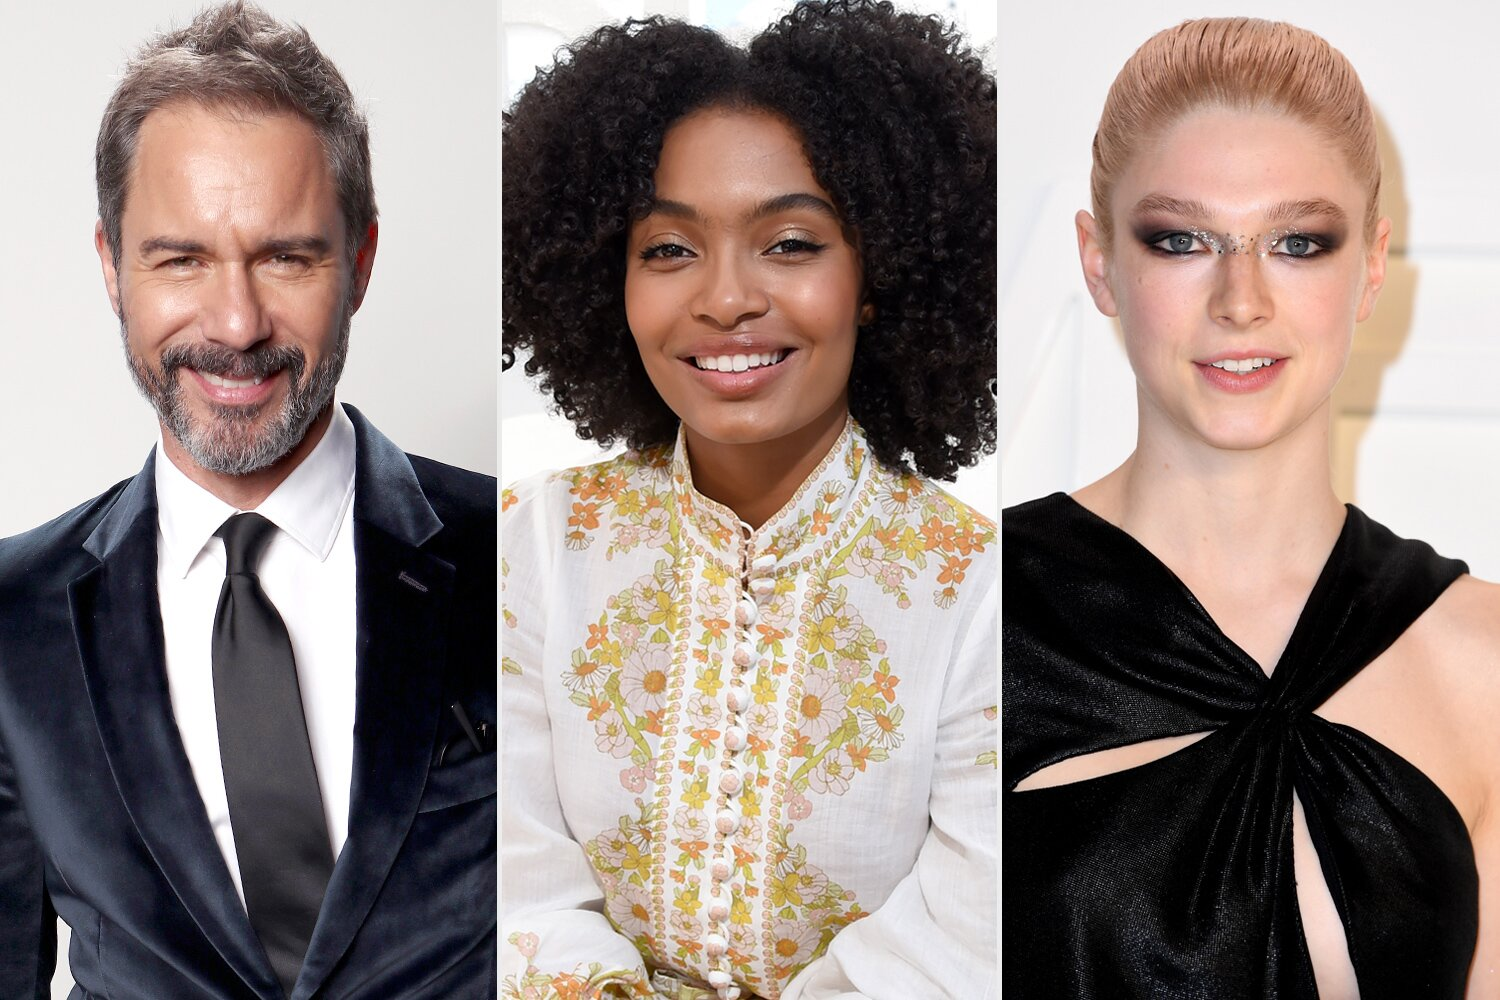 Scad Halloween Party 2020 SCAD aTVfest 2020 lineup to include Eric McCormack, Yara Shahidi